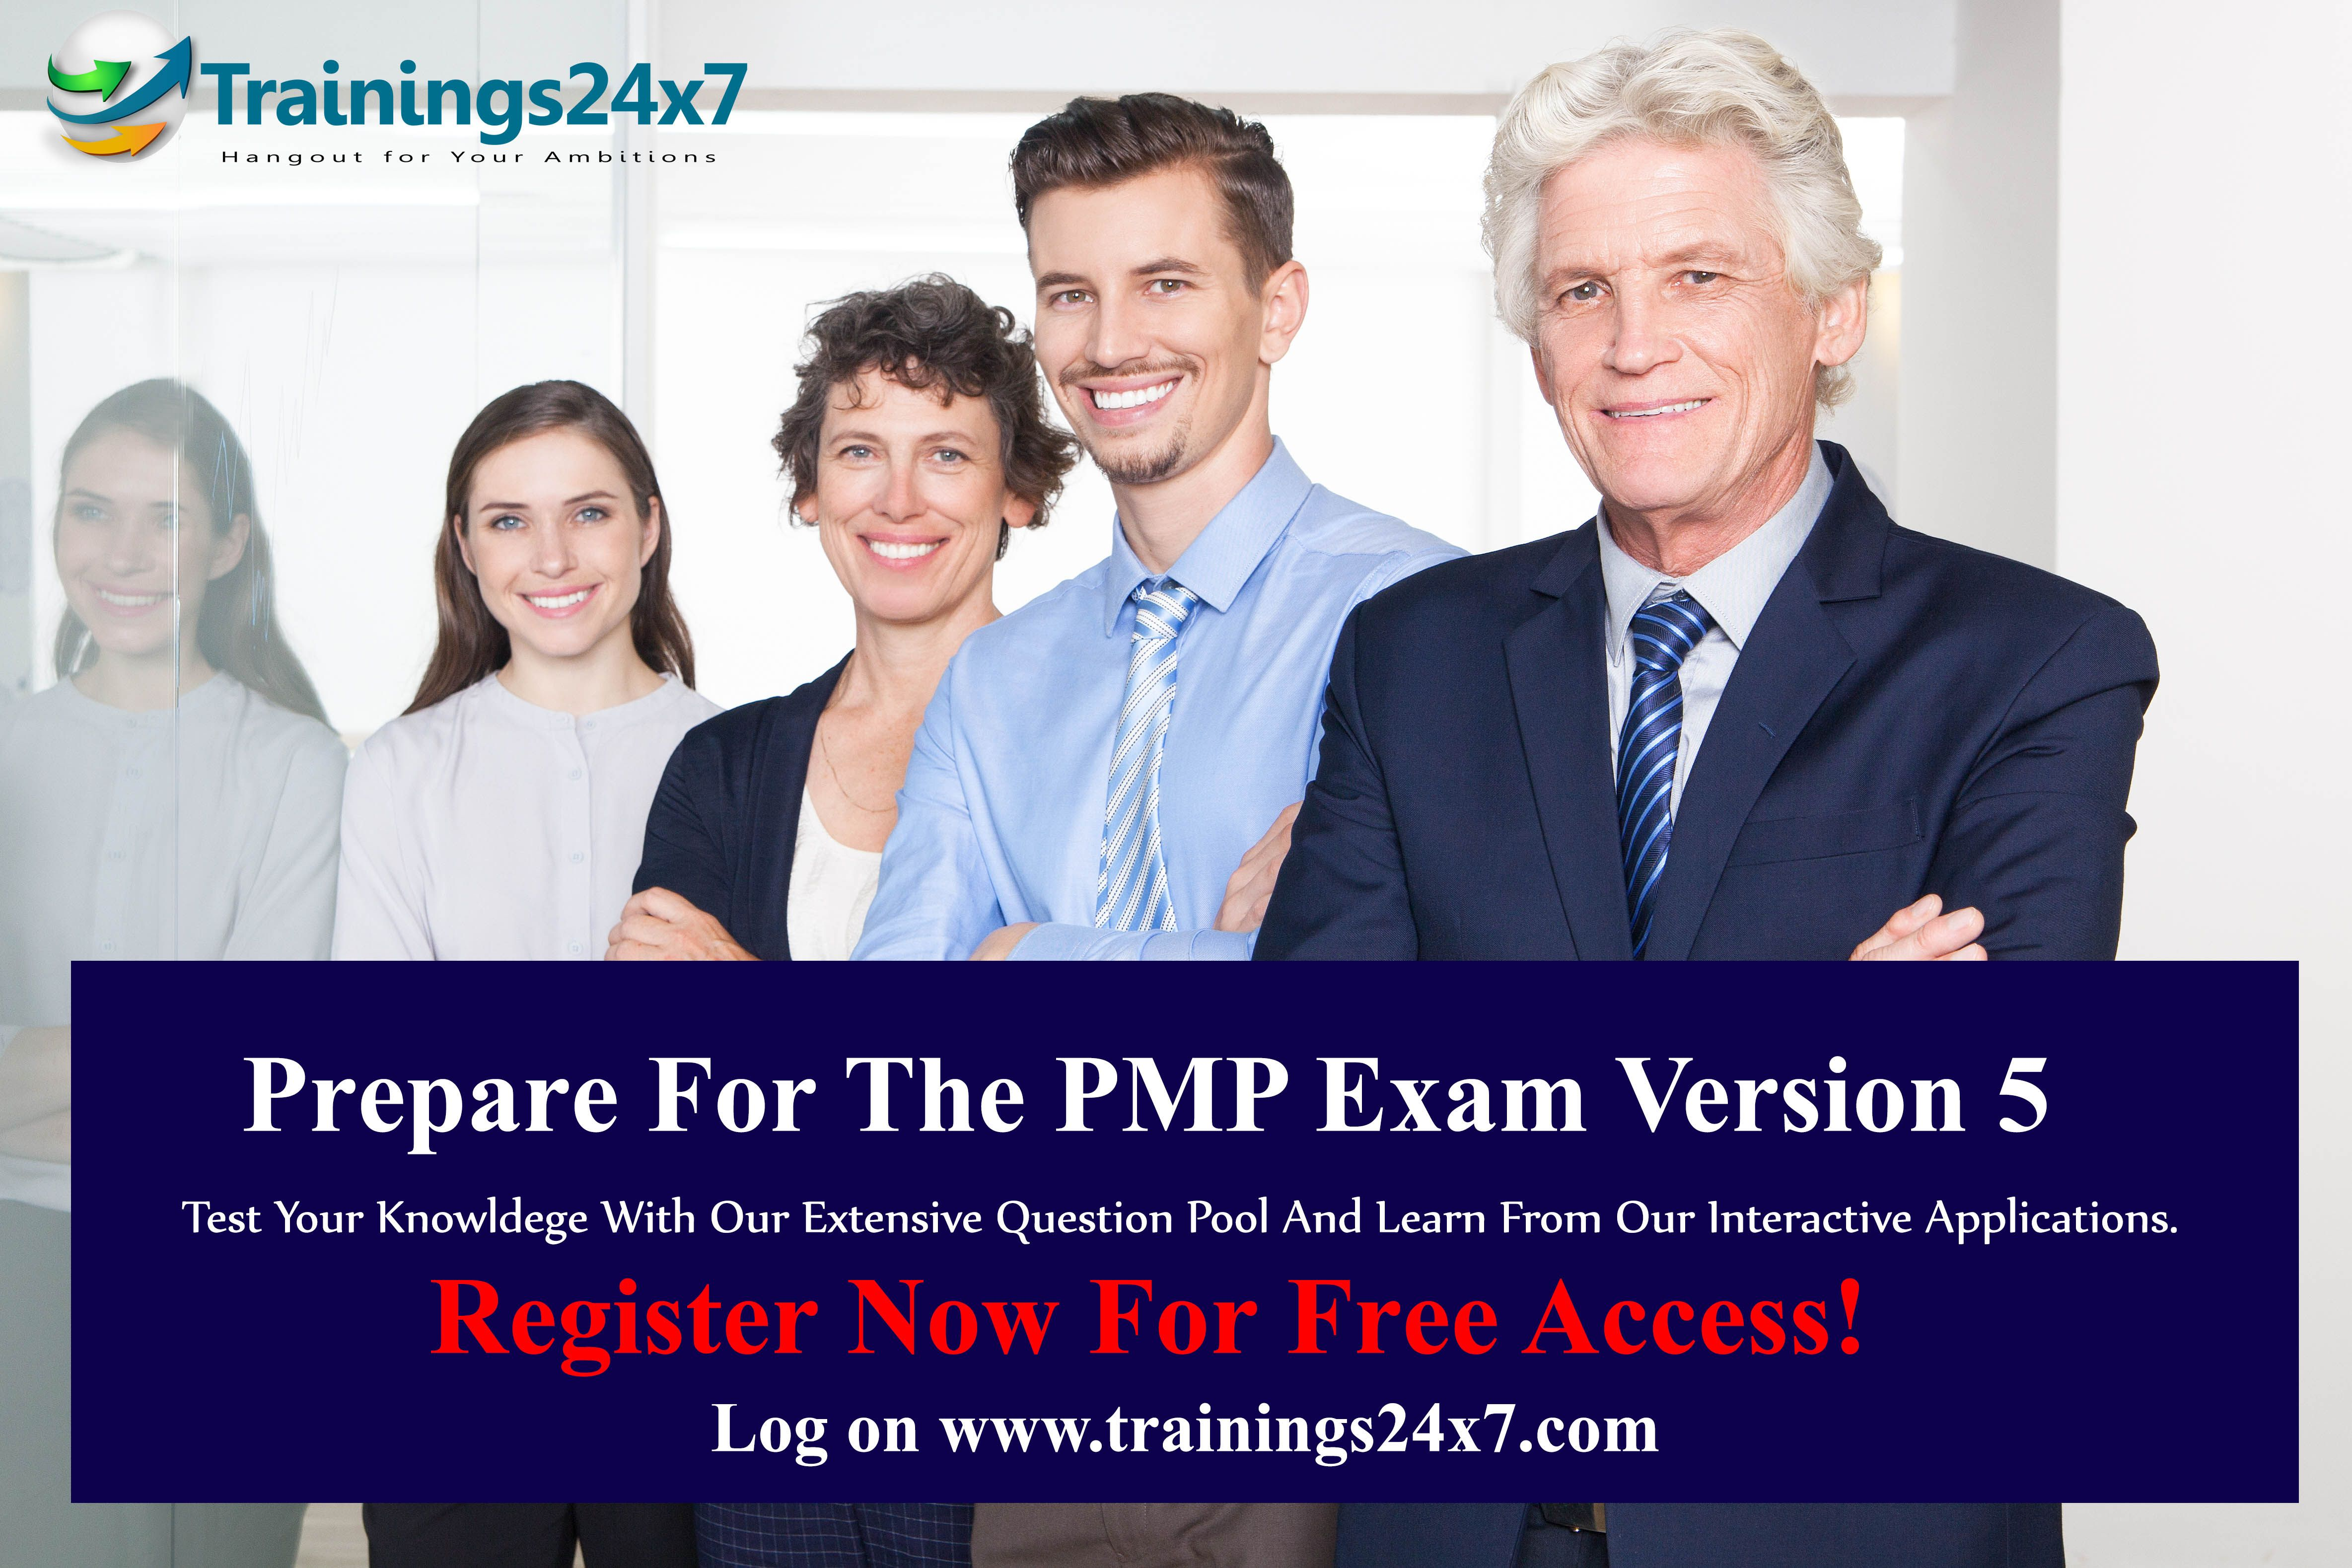 Trainings24x7 provide pmp certification involving 4 days training trainings24x7 provide pmp certification involving 4 days training divided into two weekends 35 contact hours pdu certificate mobile apps study m 1betcityfo Images